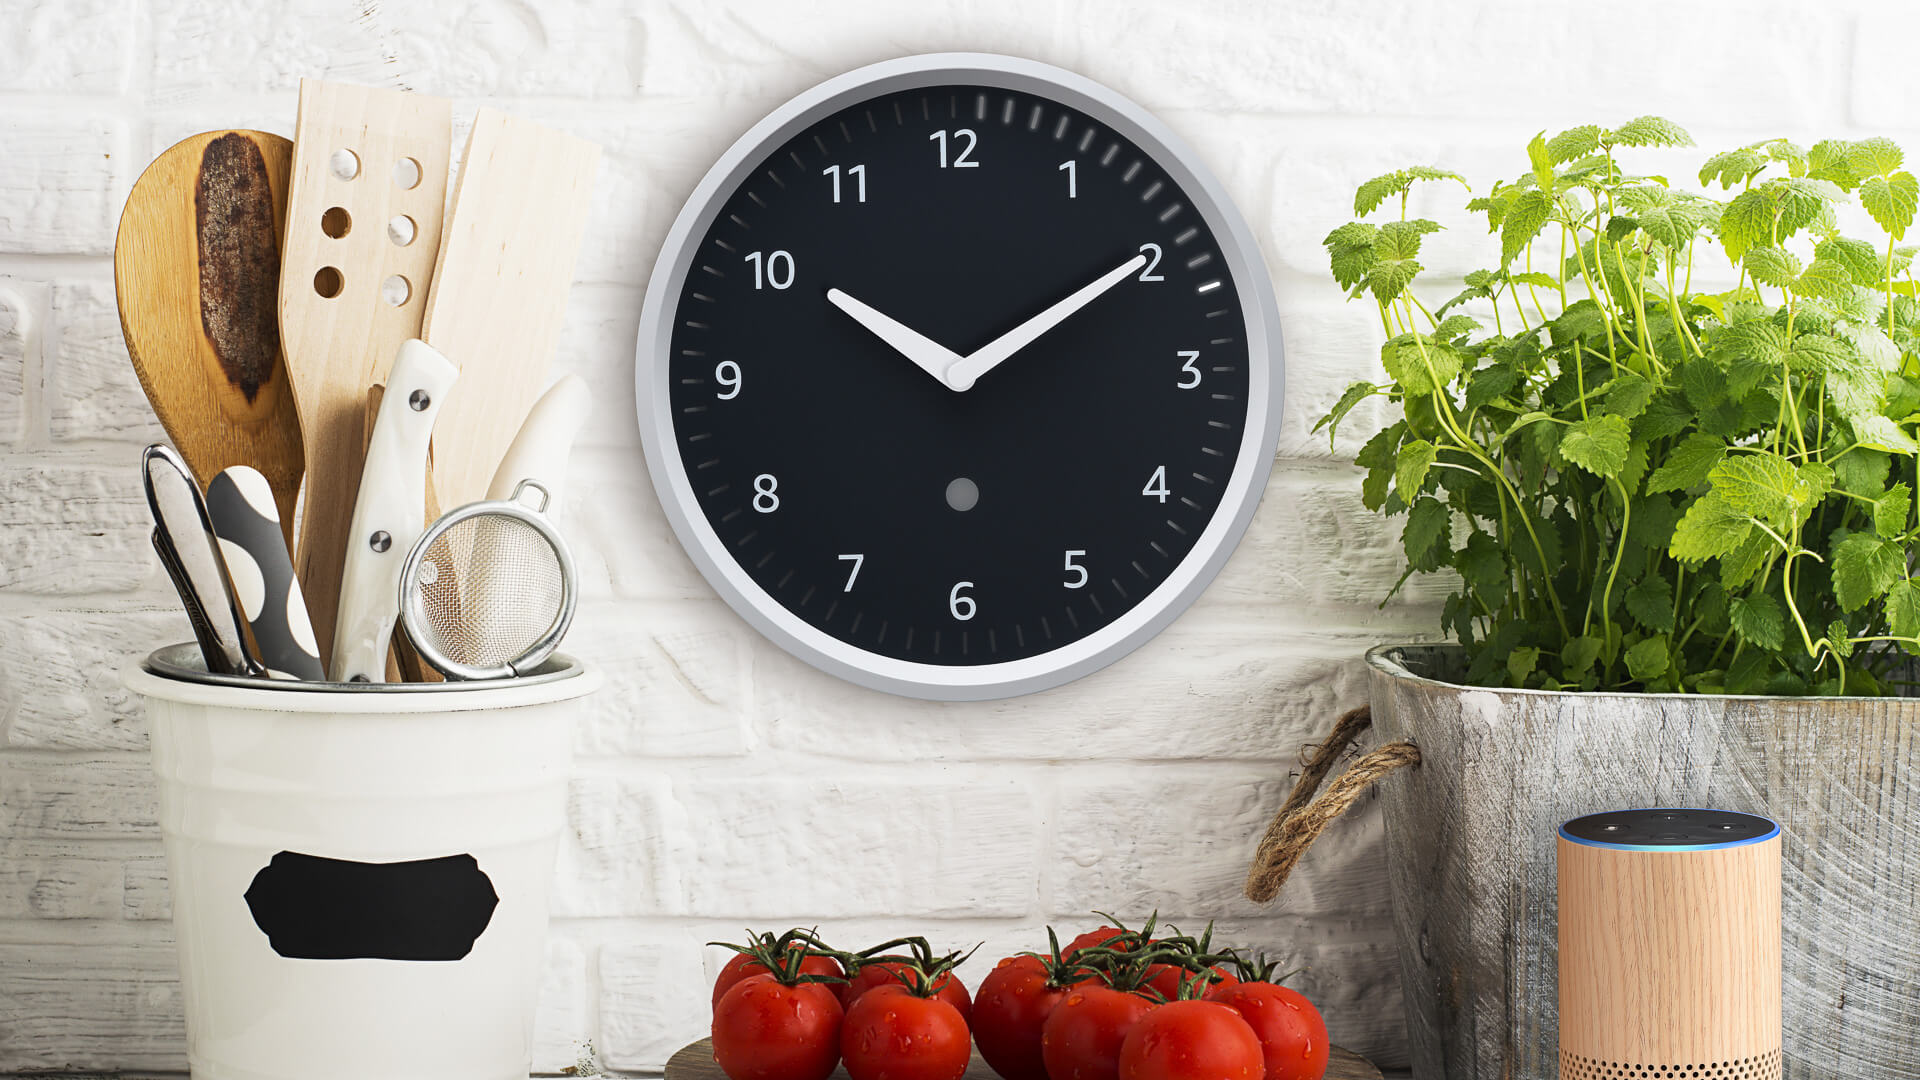 Amazon Echo Clock kitchen